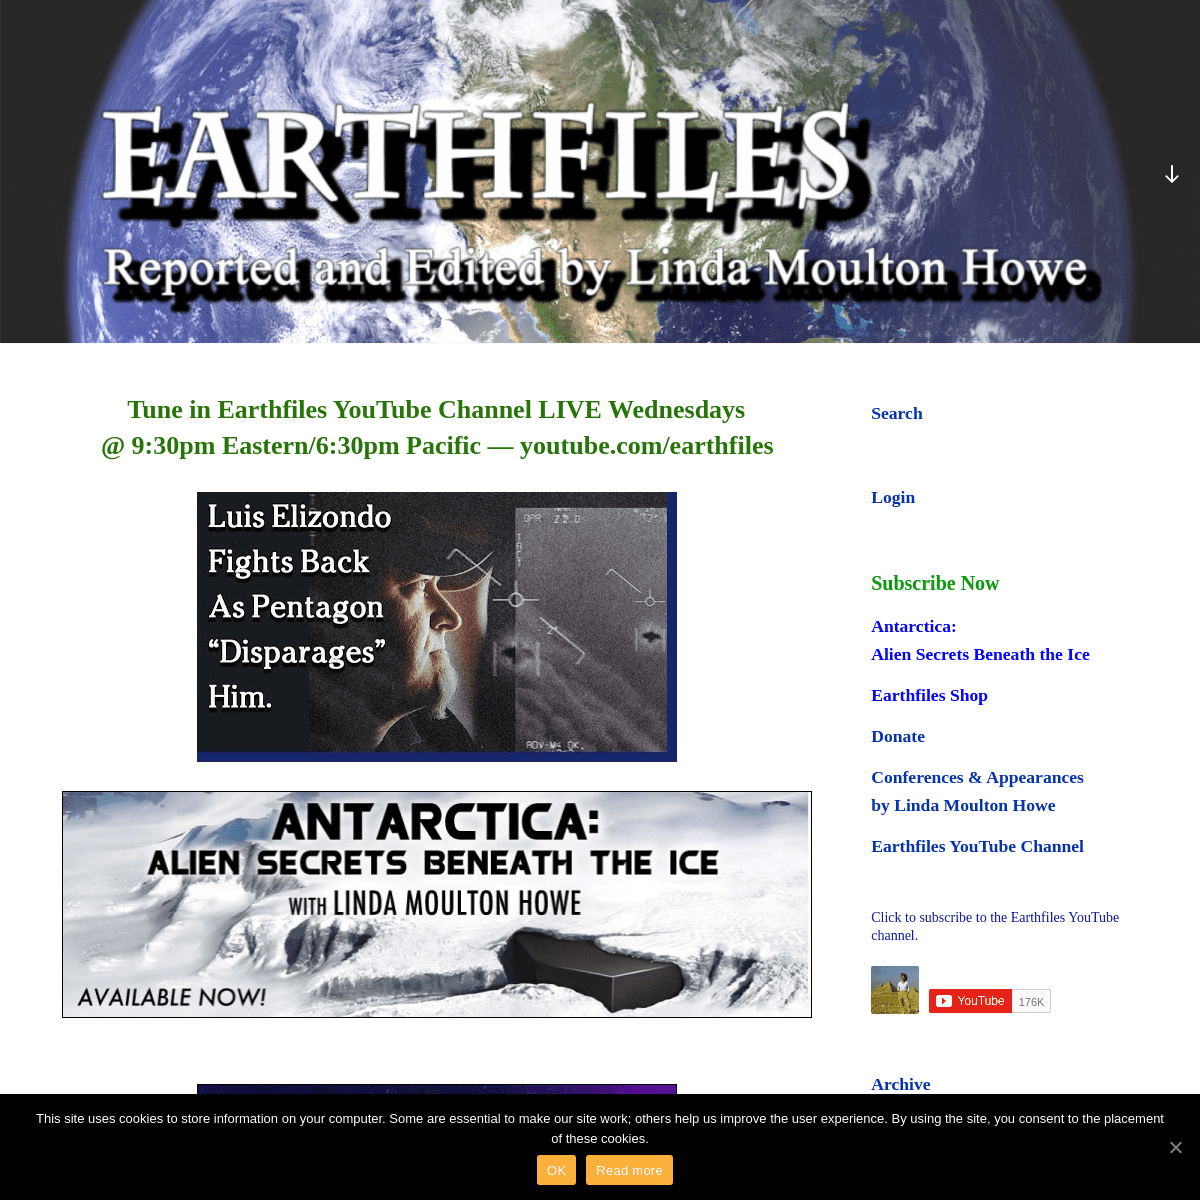 Earthfiles – Reported and Edited by Linda Moulton Howe